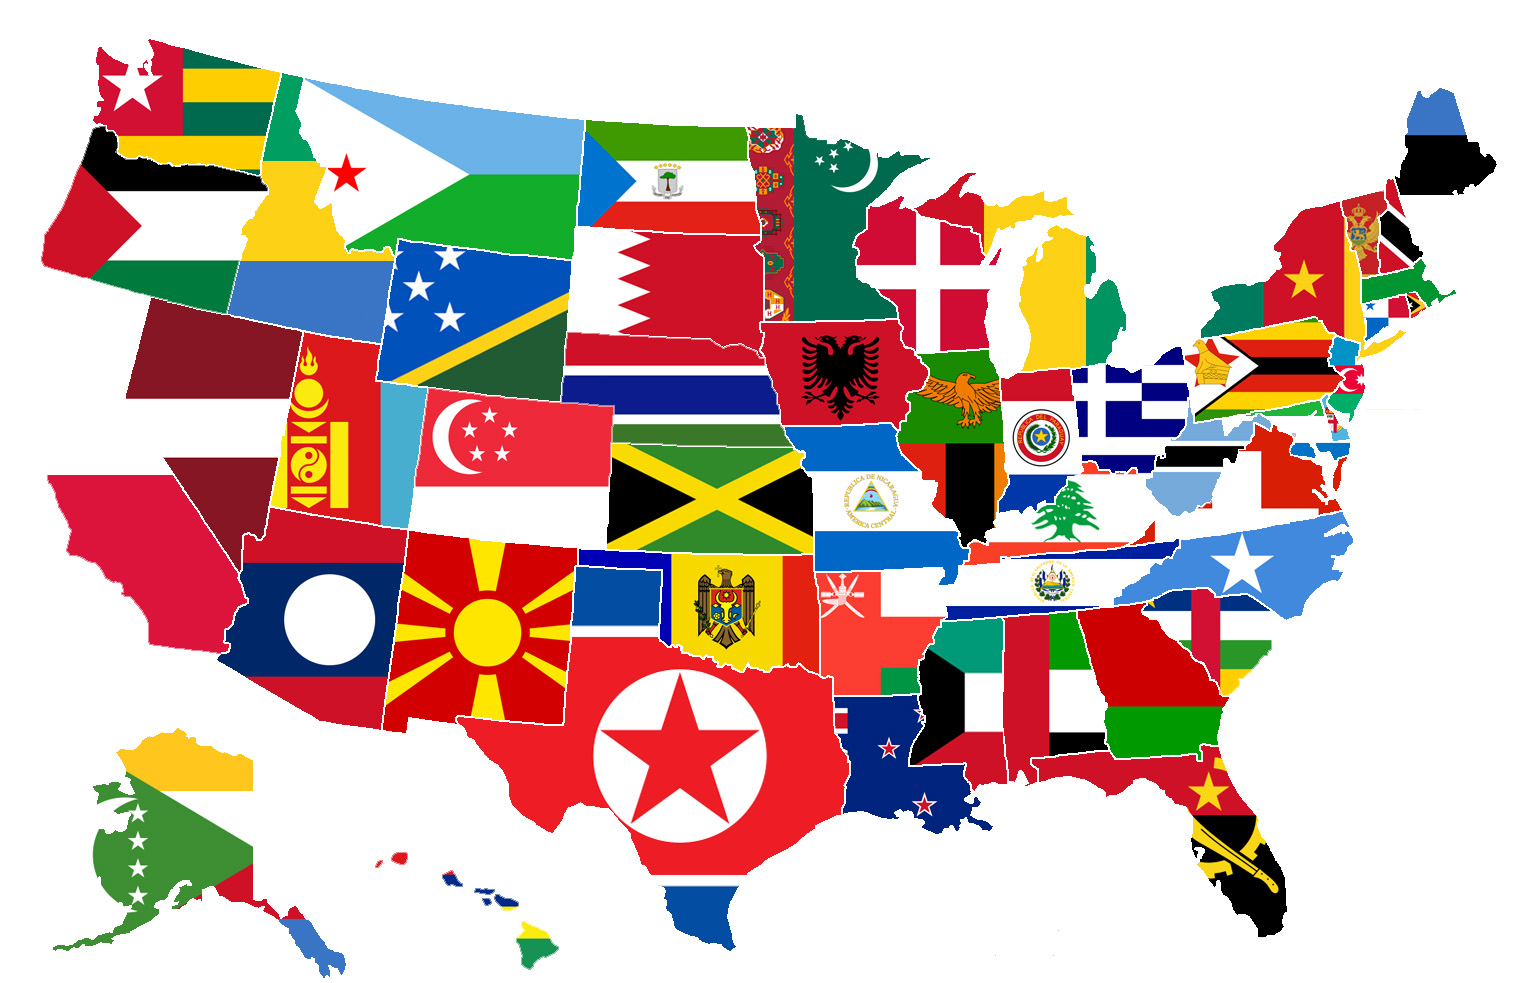 this map shows the different states of america replaced with the flag of a country with a similar size in population the map visually shows how large the